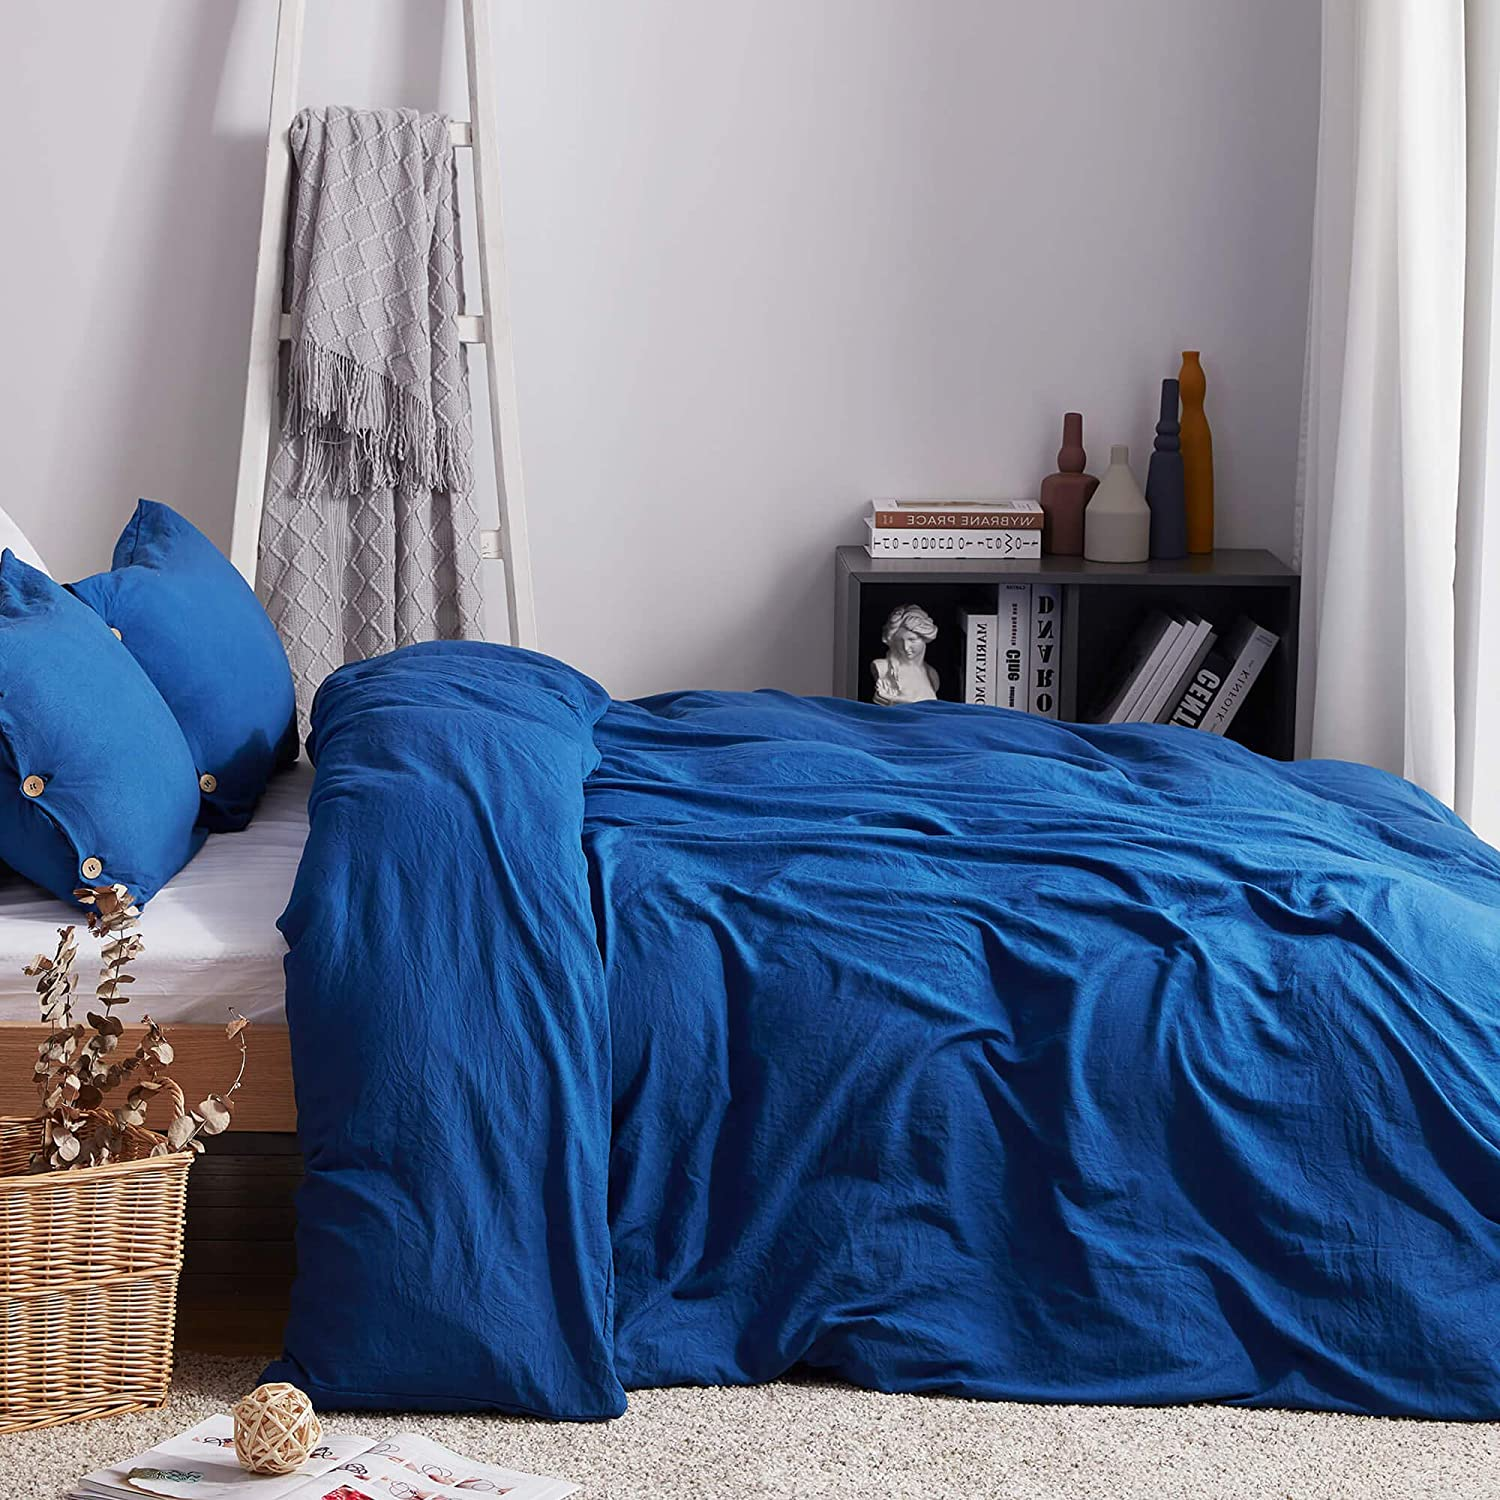 3 Pieces Solid Color Blue Bedding Set,100/% Washed Microfiber,Breathable/& Ultra Soft with Zipper/&Corner Ties 68/×90 Blue, Twin Uhsupris Twin Duvet Covers Size